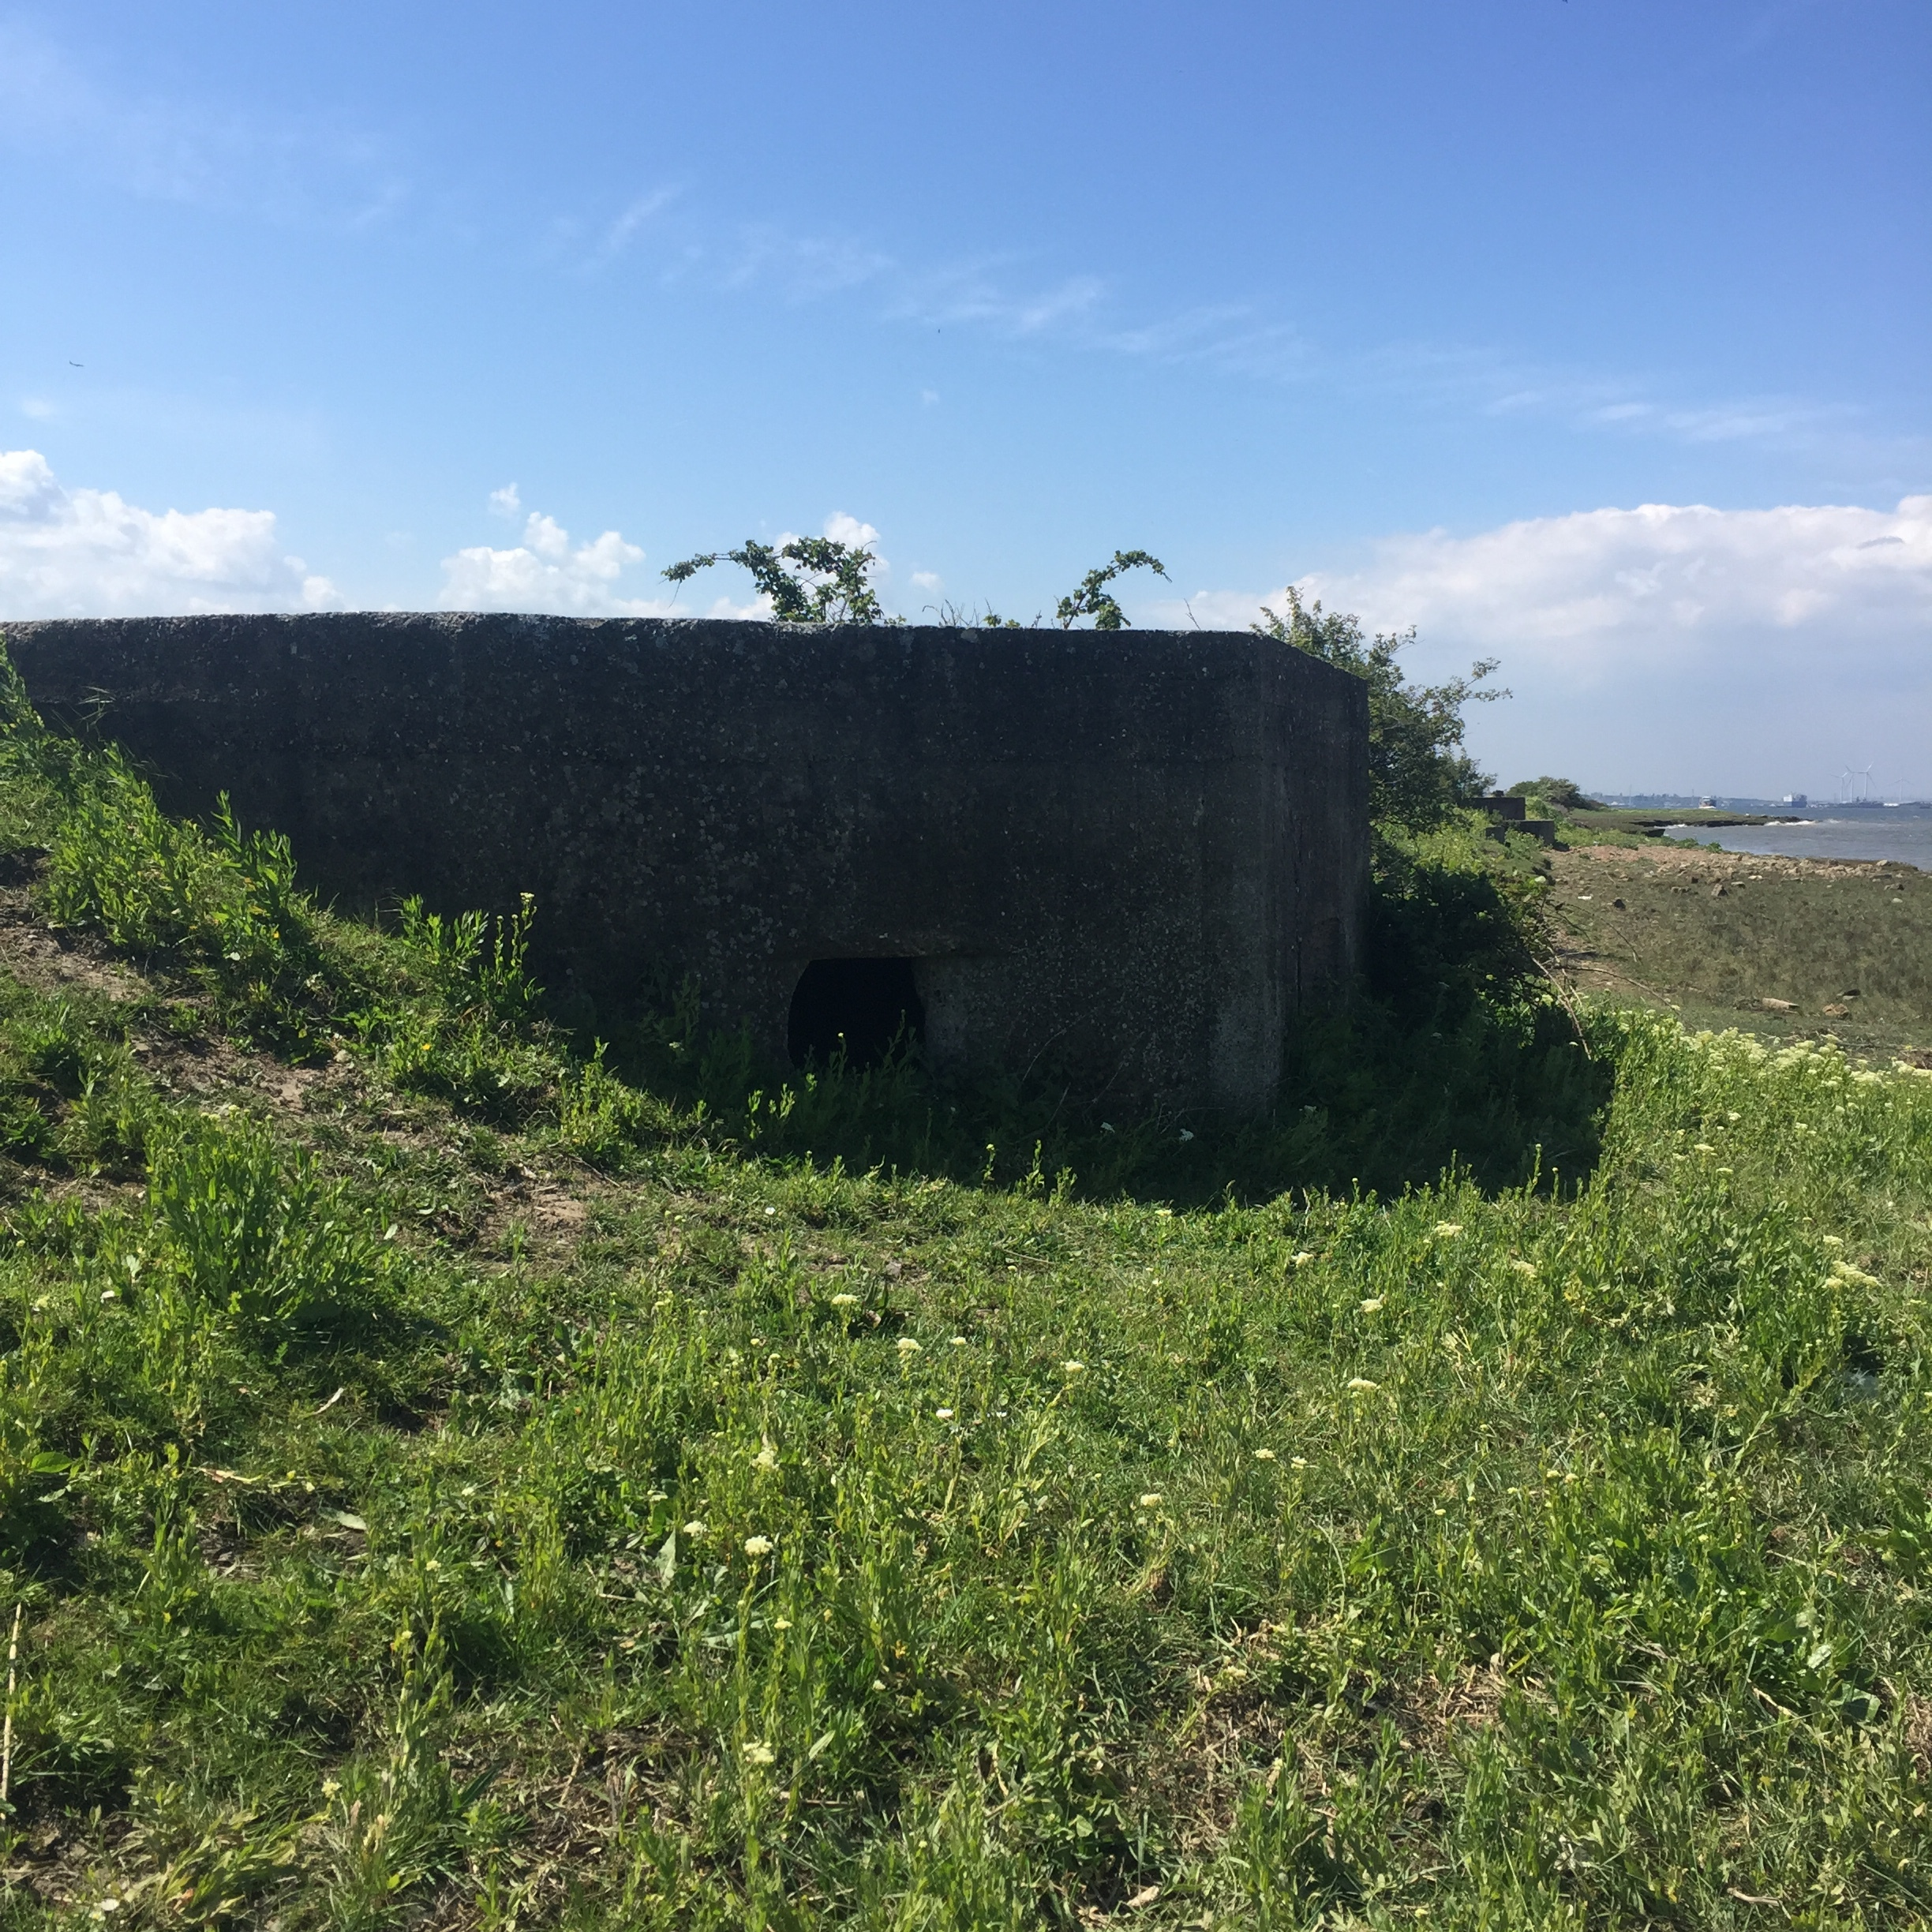 The sleeping pillbox